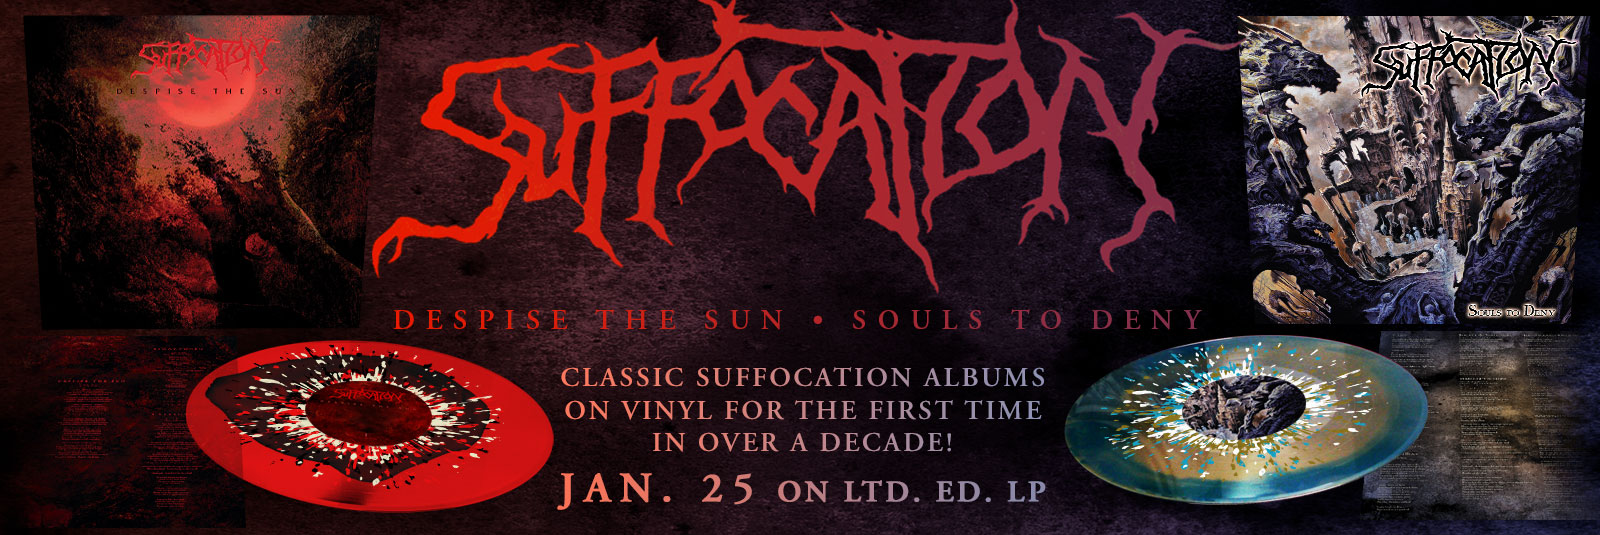 suffocation-despise-the-sun-souls-to-deny